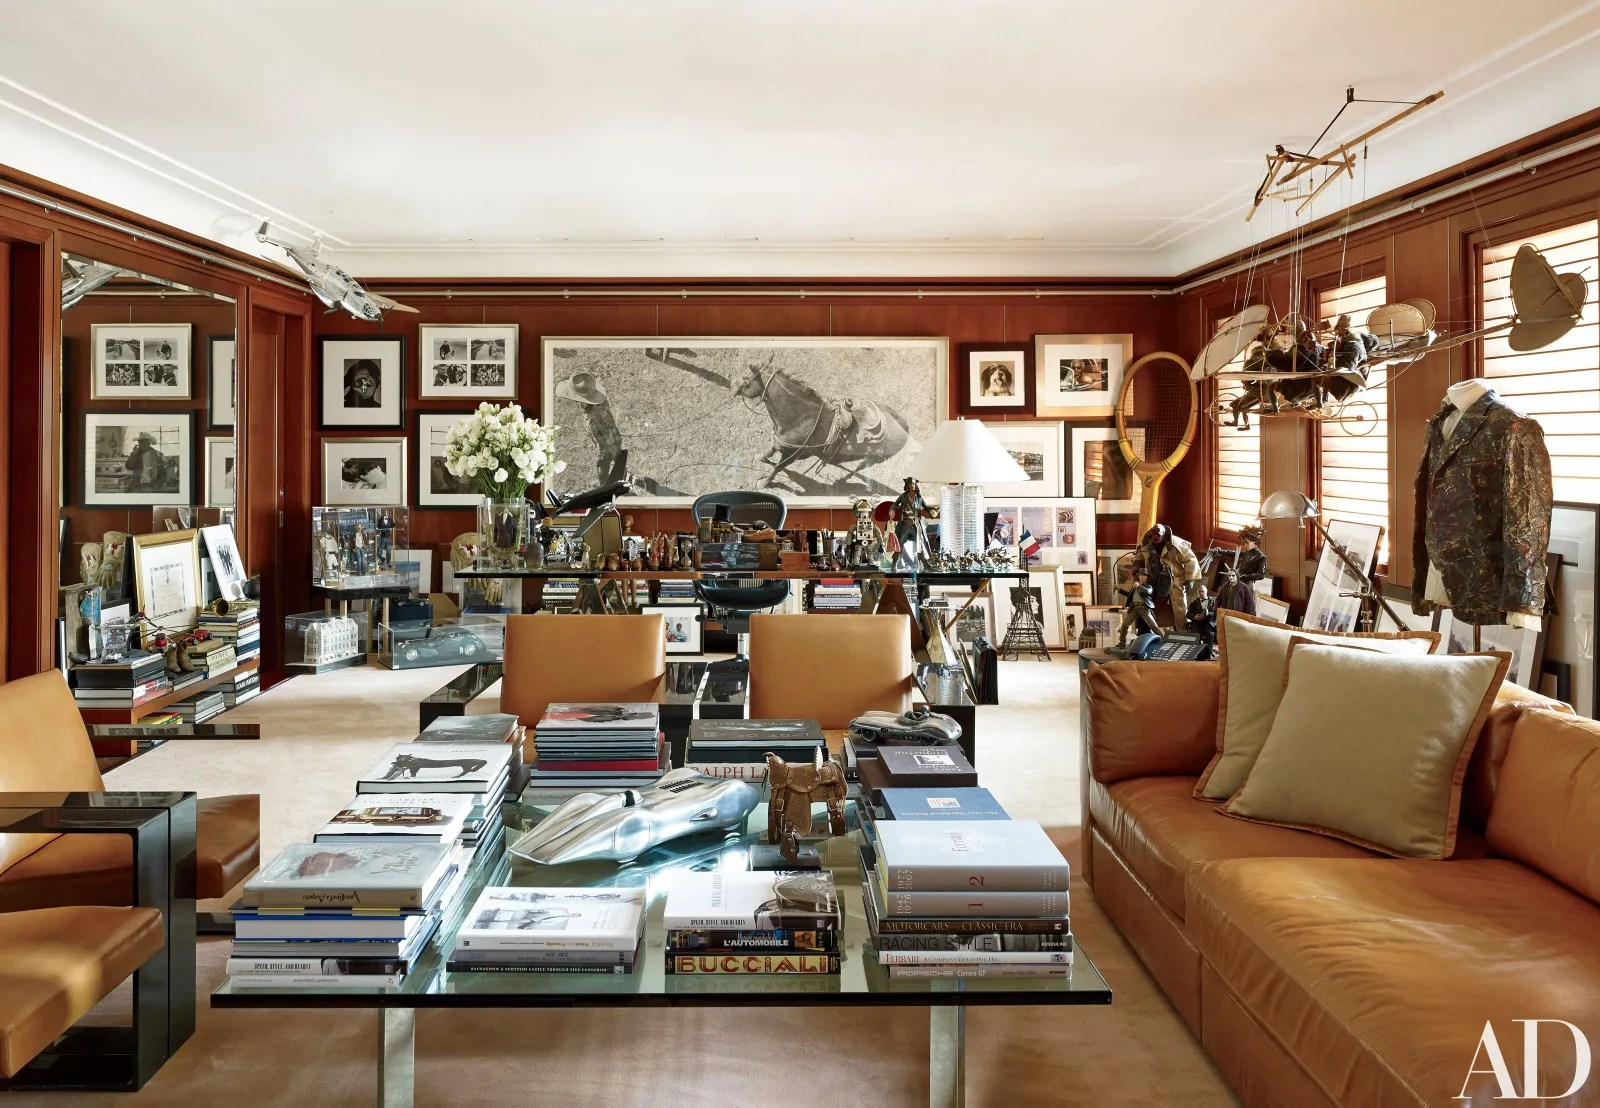 Ralph Laurens Refined Houses and Chic Madison Avenue Office  Architectural Digest